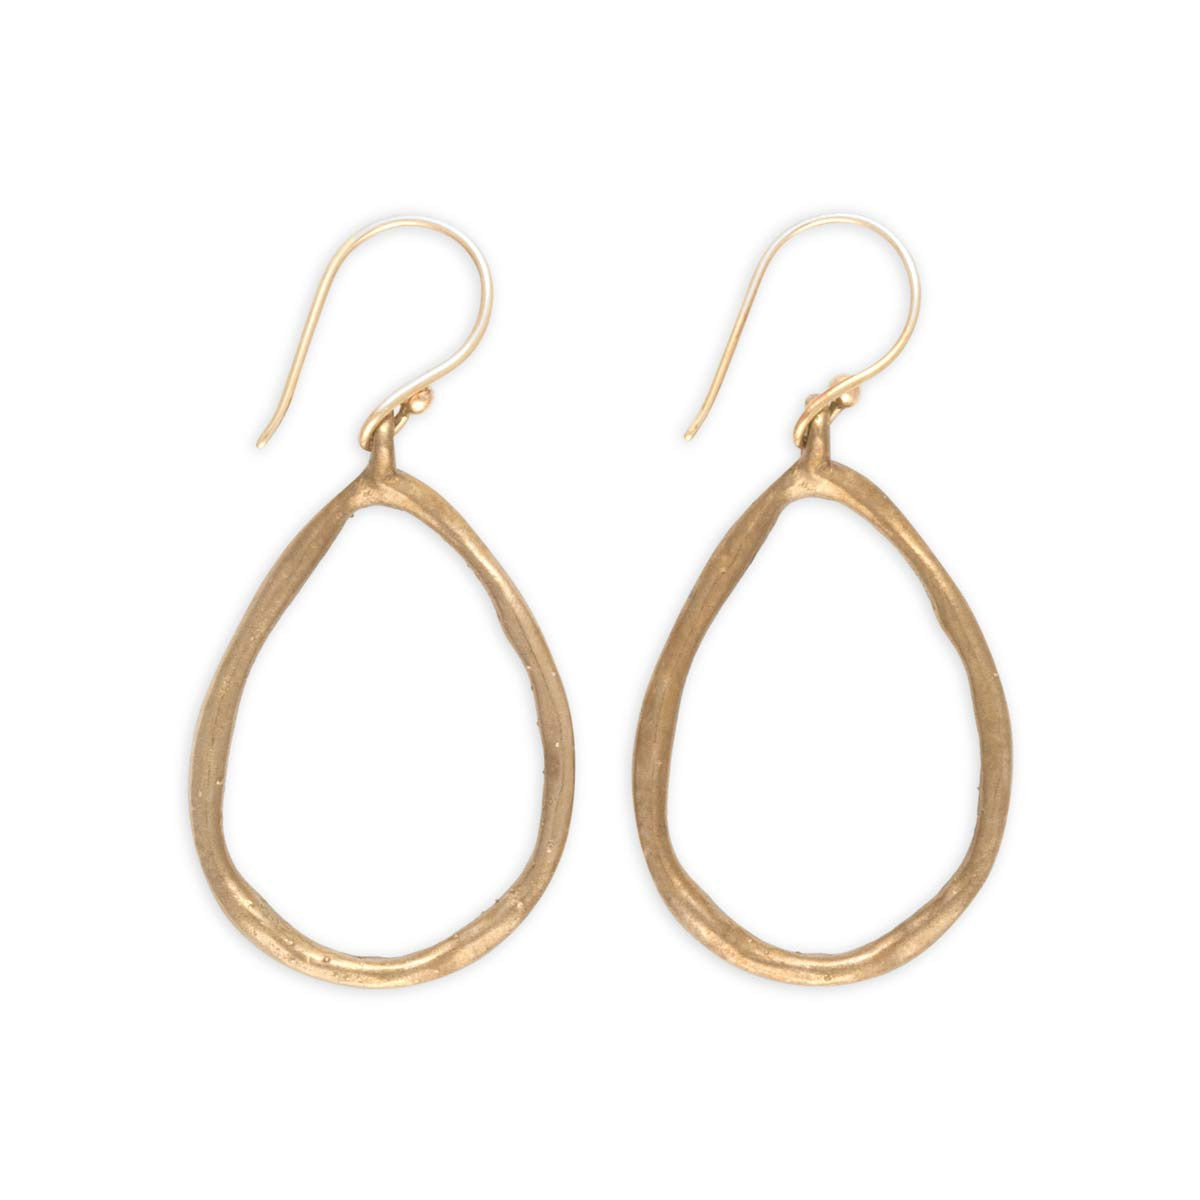 Teardrop-earrings-bronze-sterling-silver-hoops